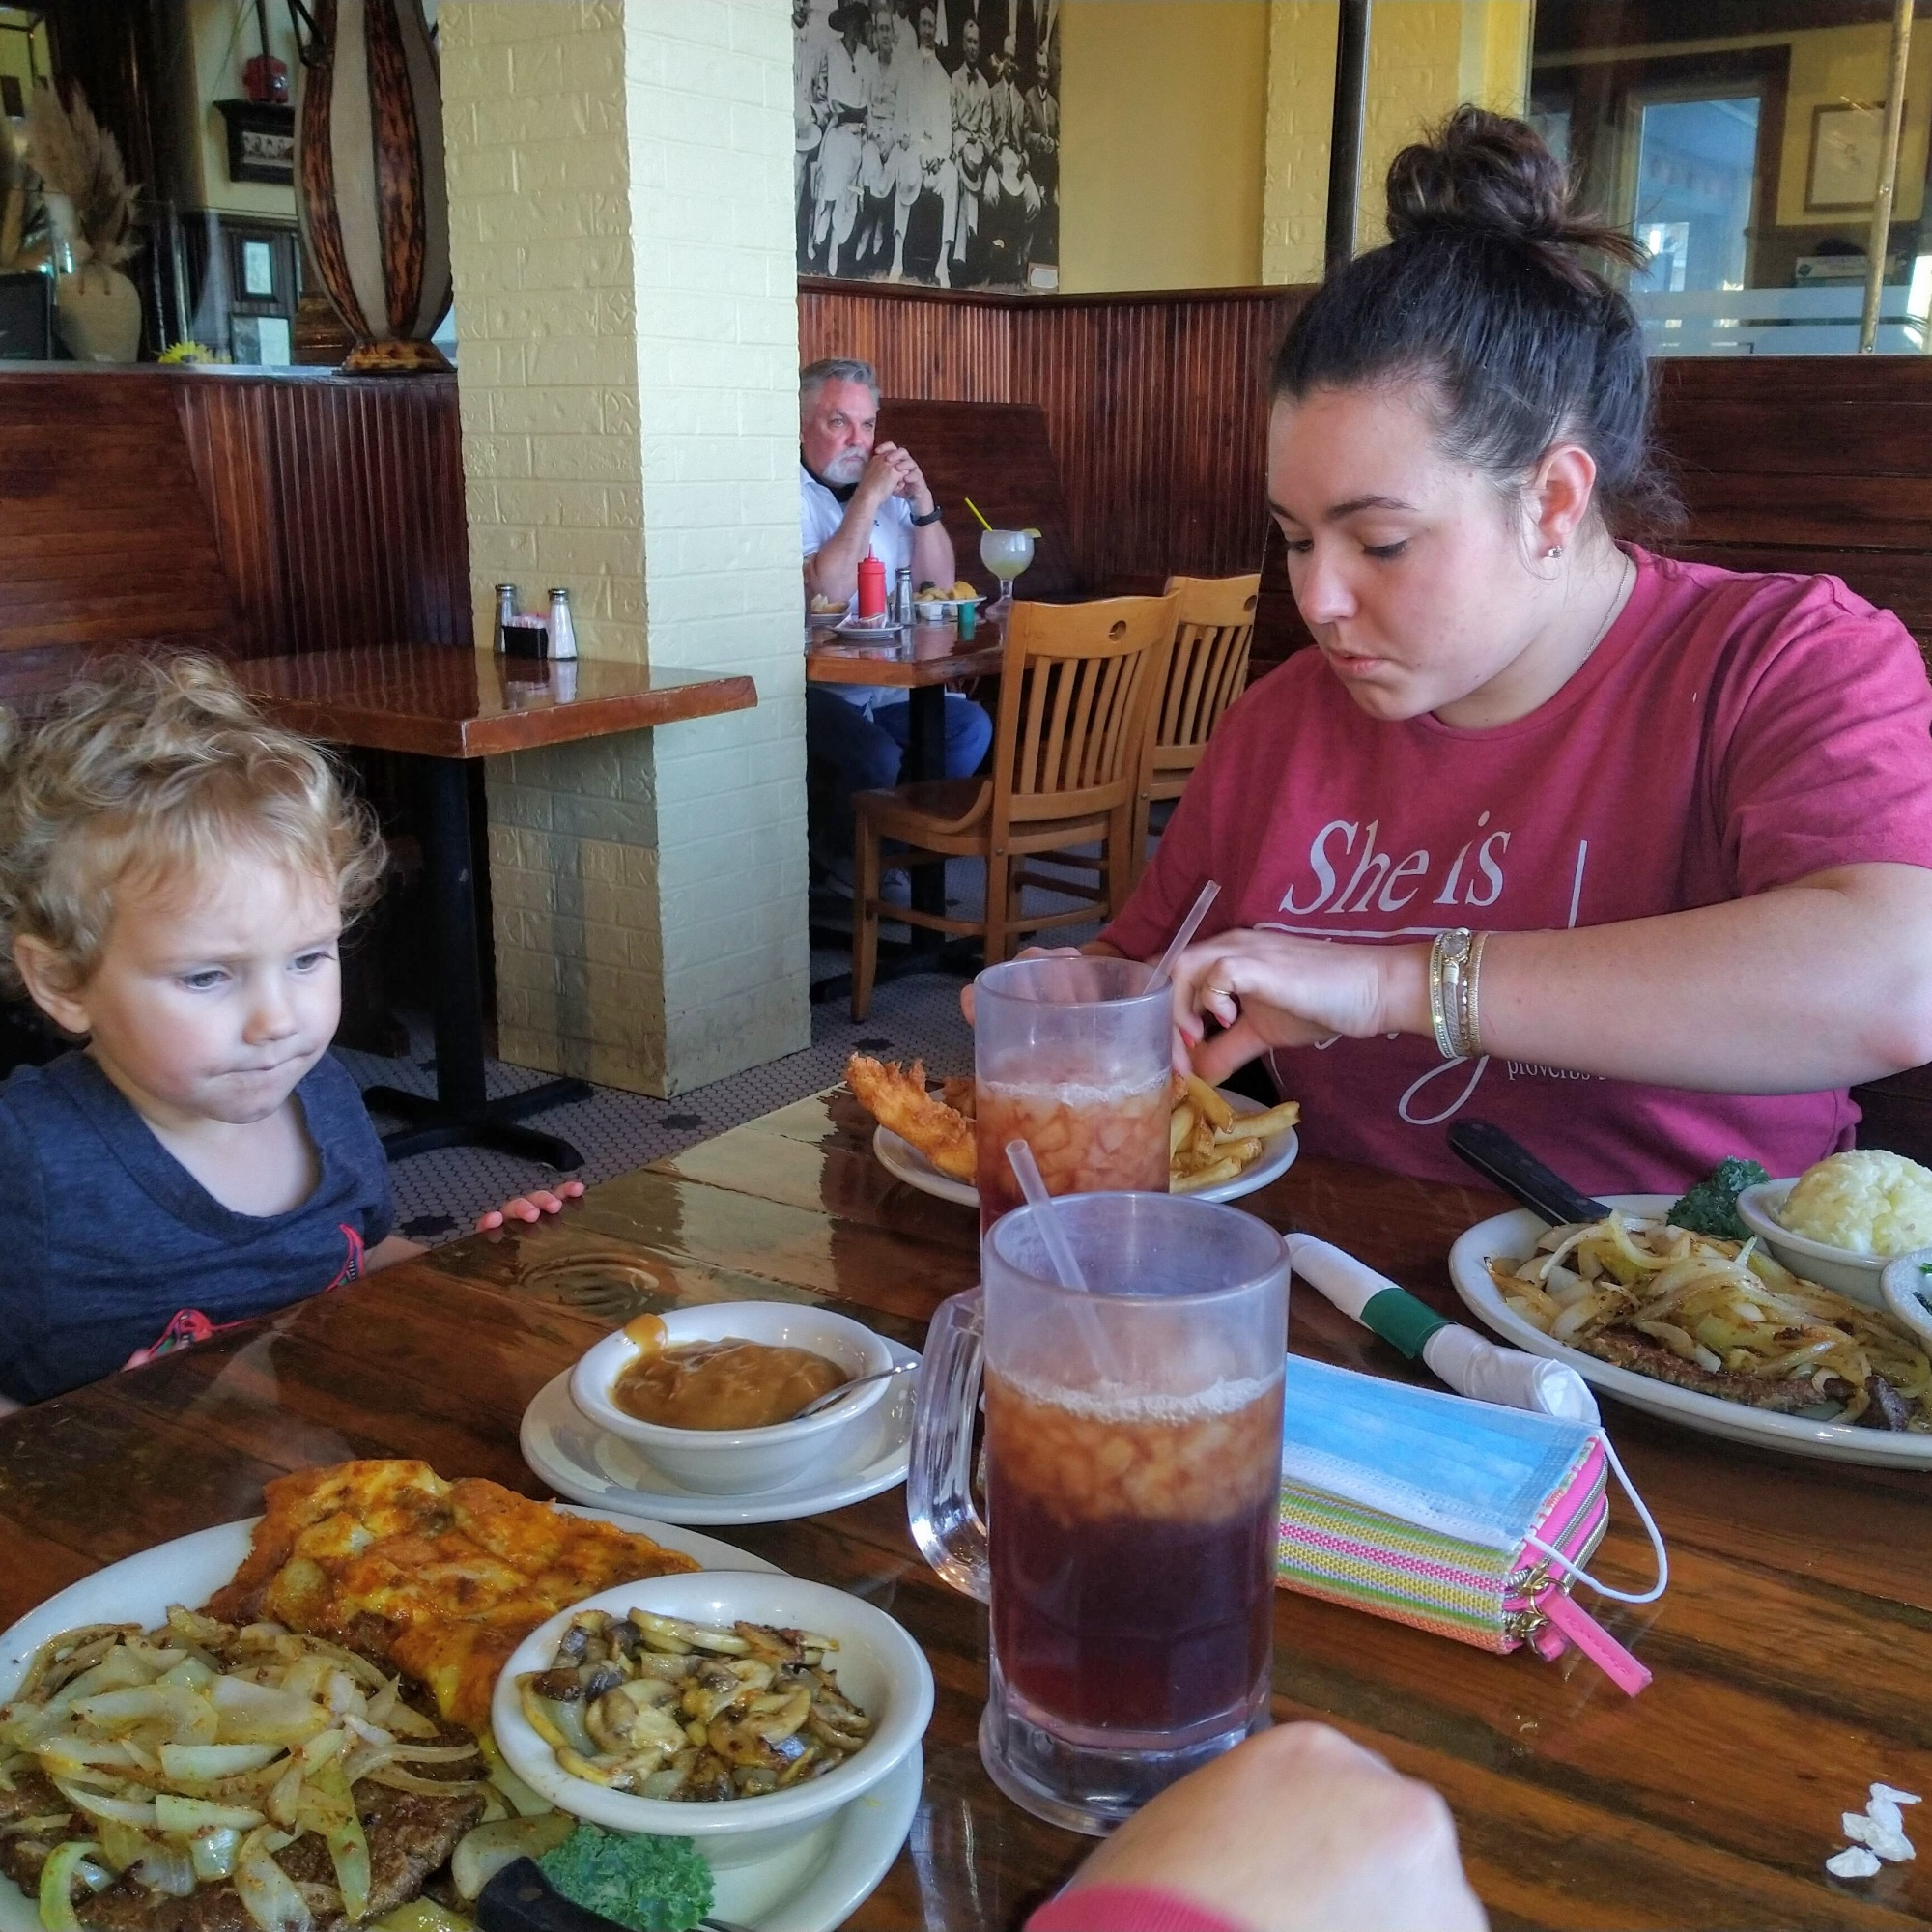 table-full-of-food-with-family-at-miller's-seawall-grill-in-Galveston